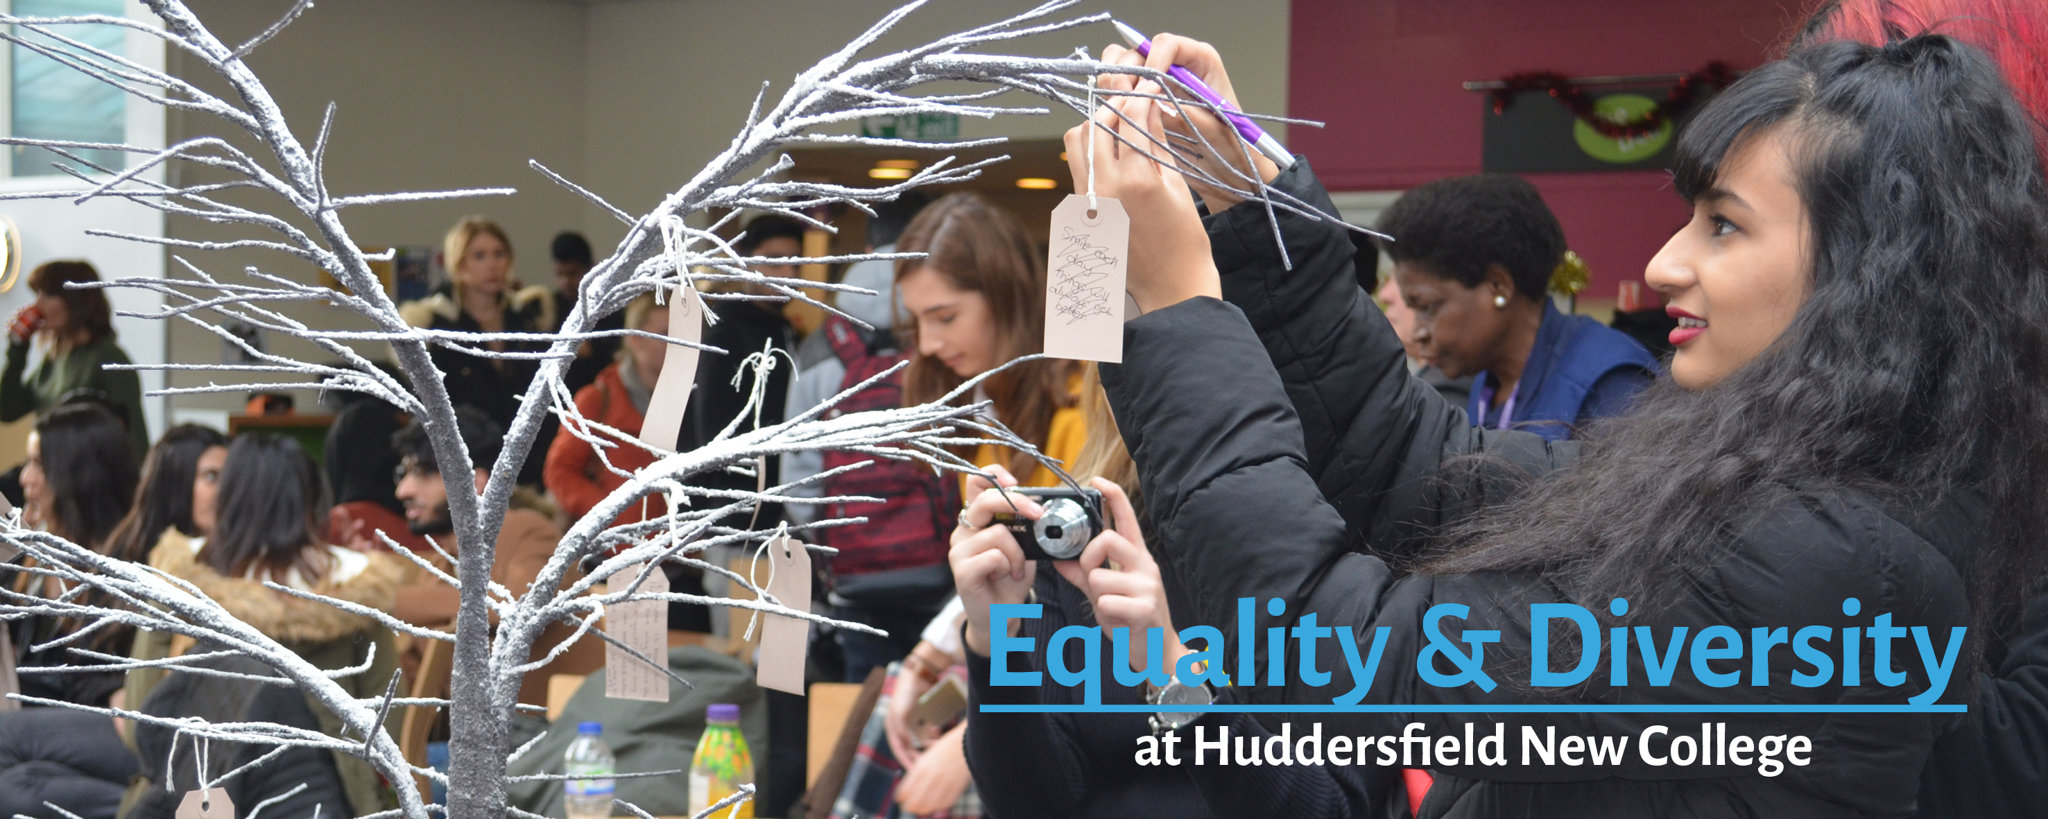 A student taking part in an equality and diversity event